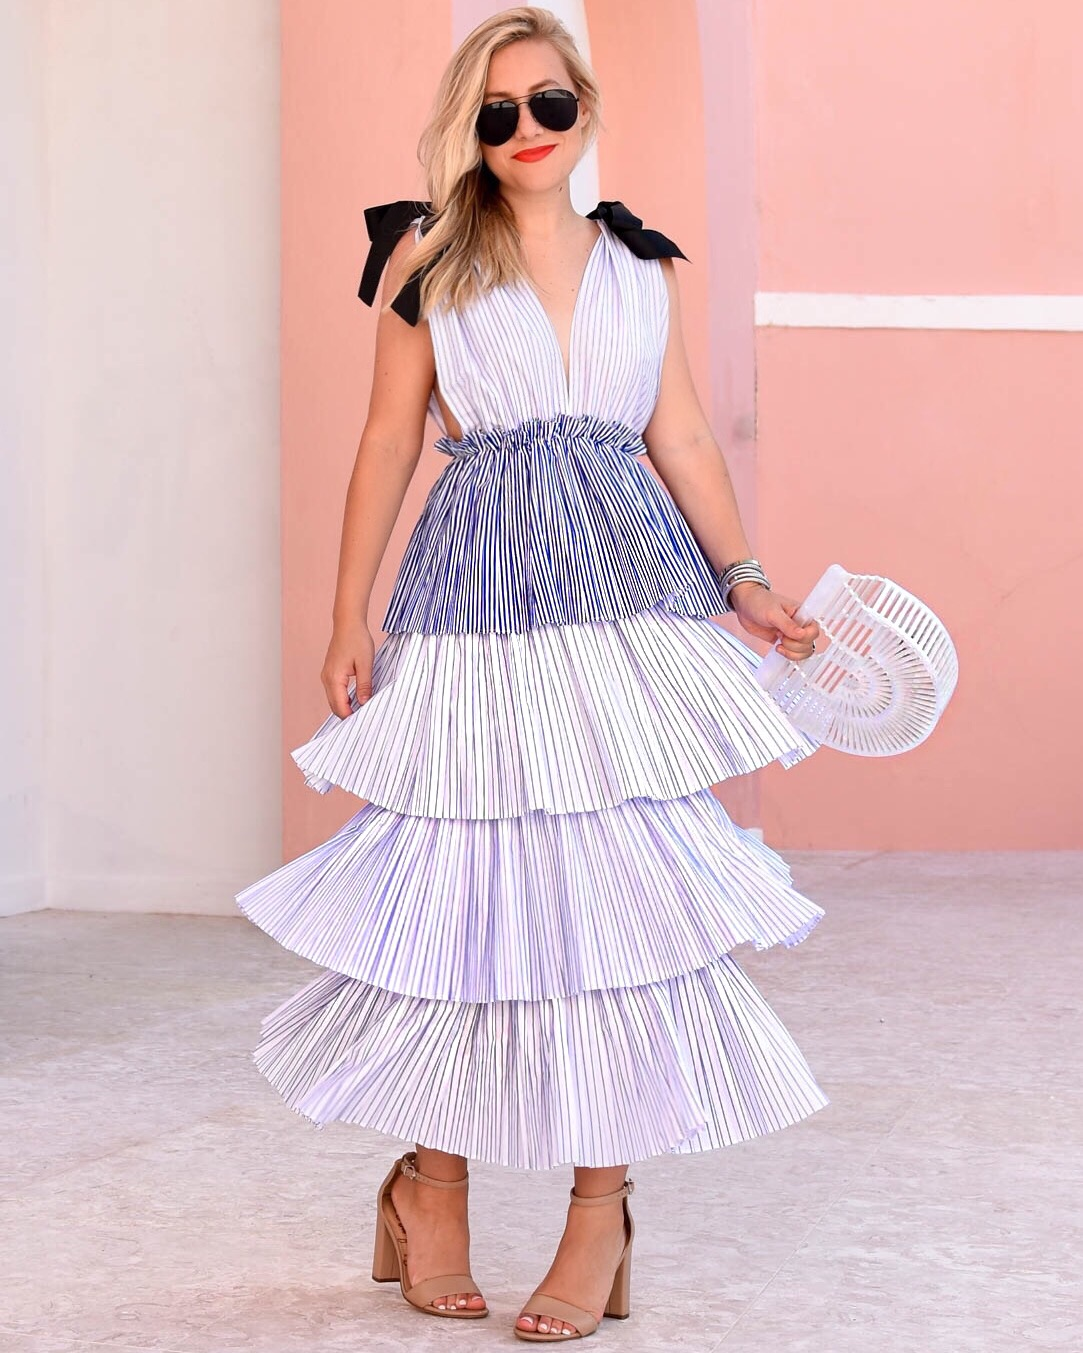 Blue Tiered Dress, Blue Ruffle Dress, Blue and white stripe dress, cult gaia arc bag, bermuda, ray ban sunglasses